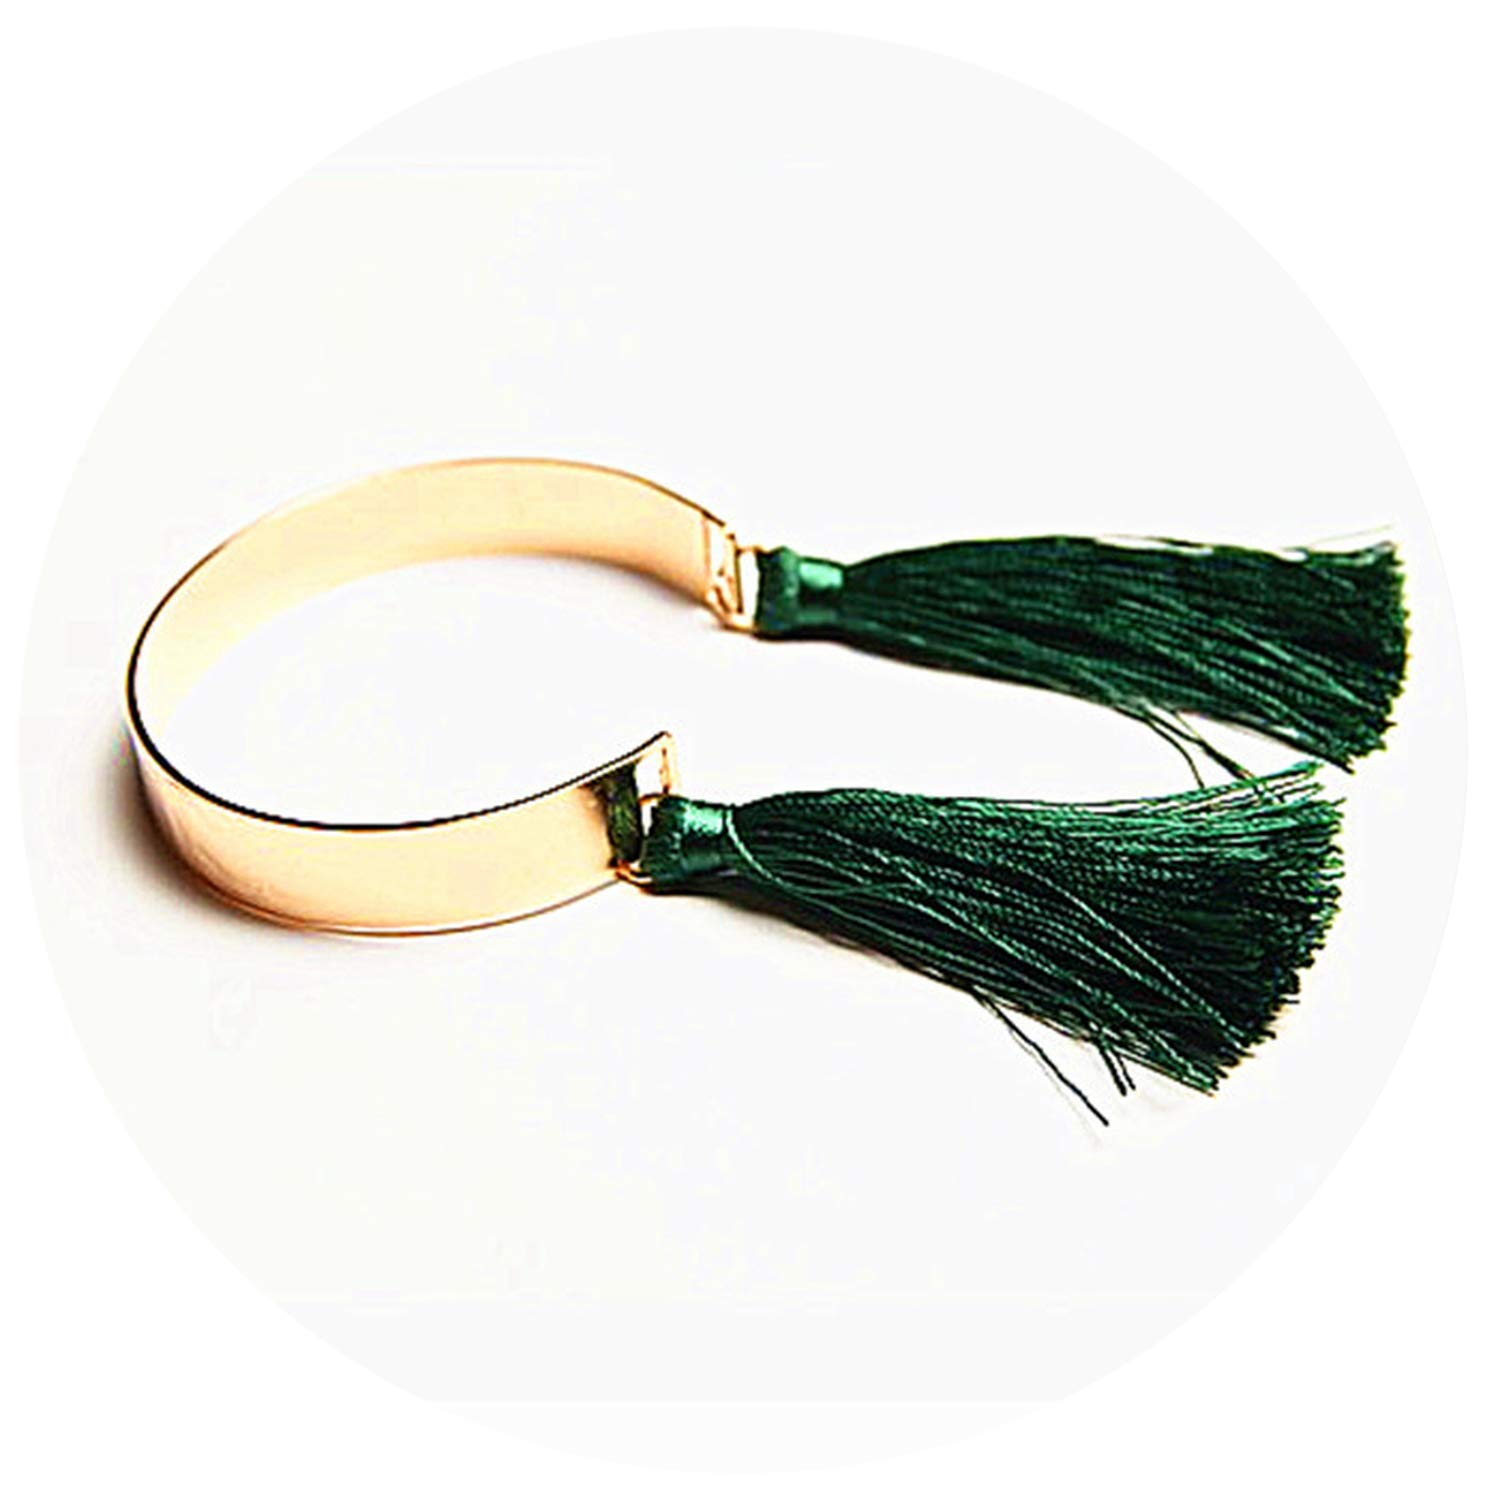 ladies and green fringed beautiful Bracelet can be fine-tuning 6.5cm,green